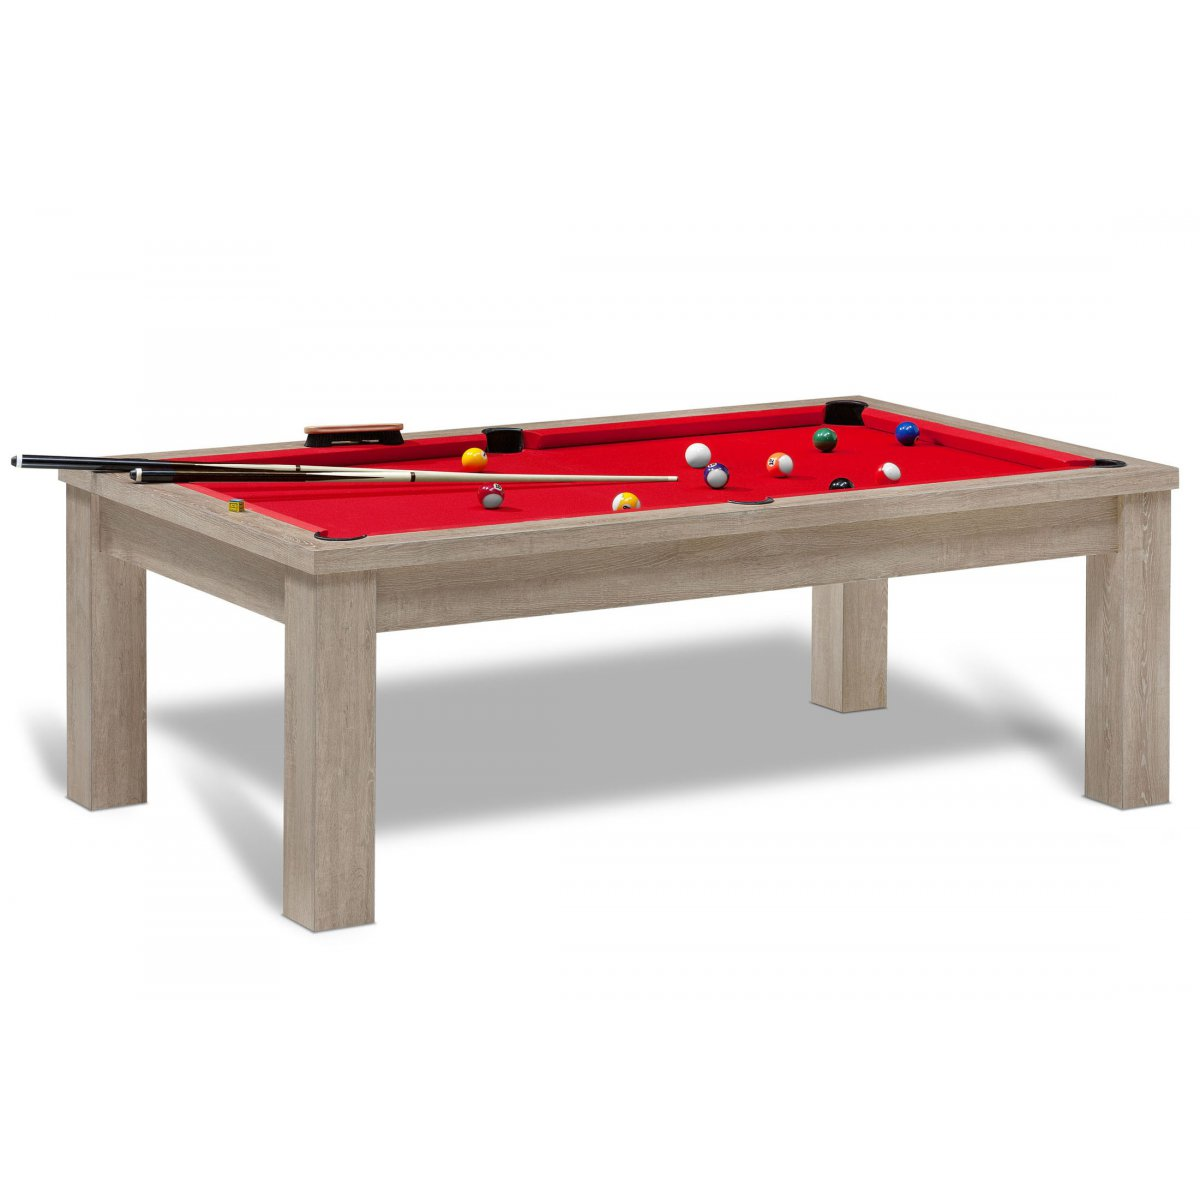 billard am ricain billard table personnalisable jeux us. Black Bedroom Furniture Sets. Home Design Ideas